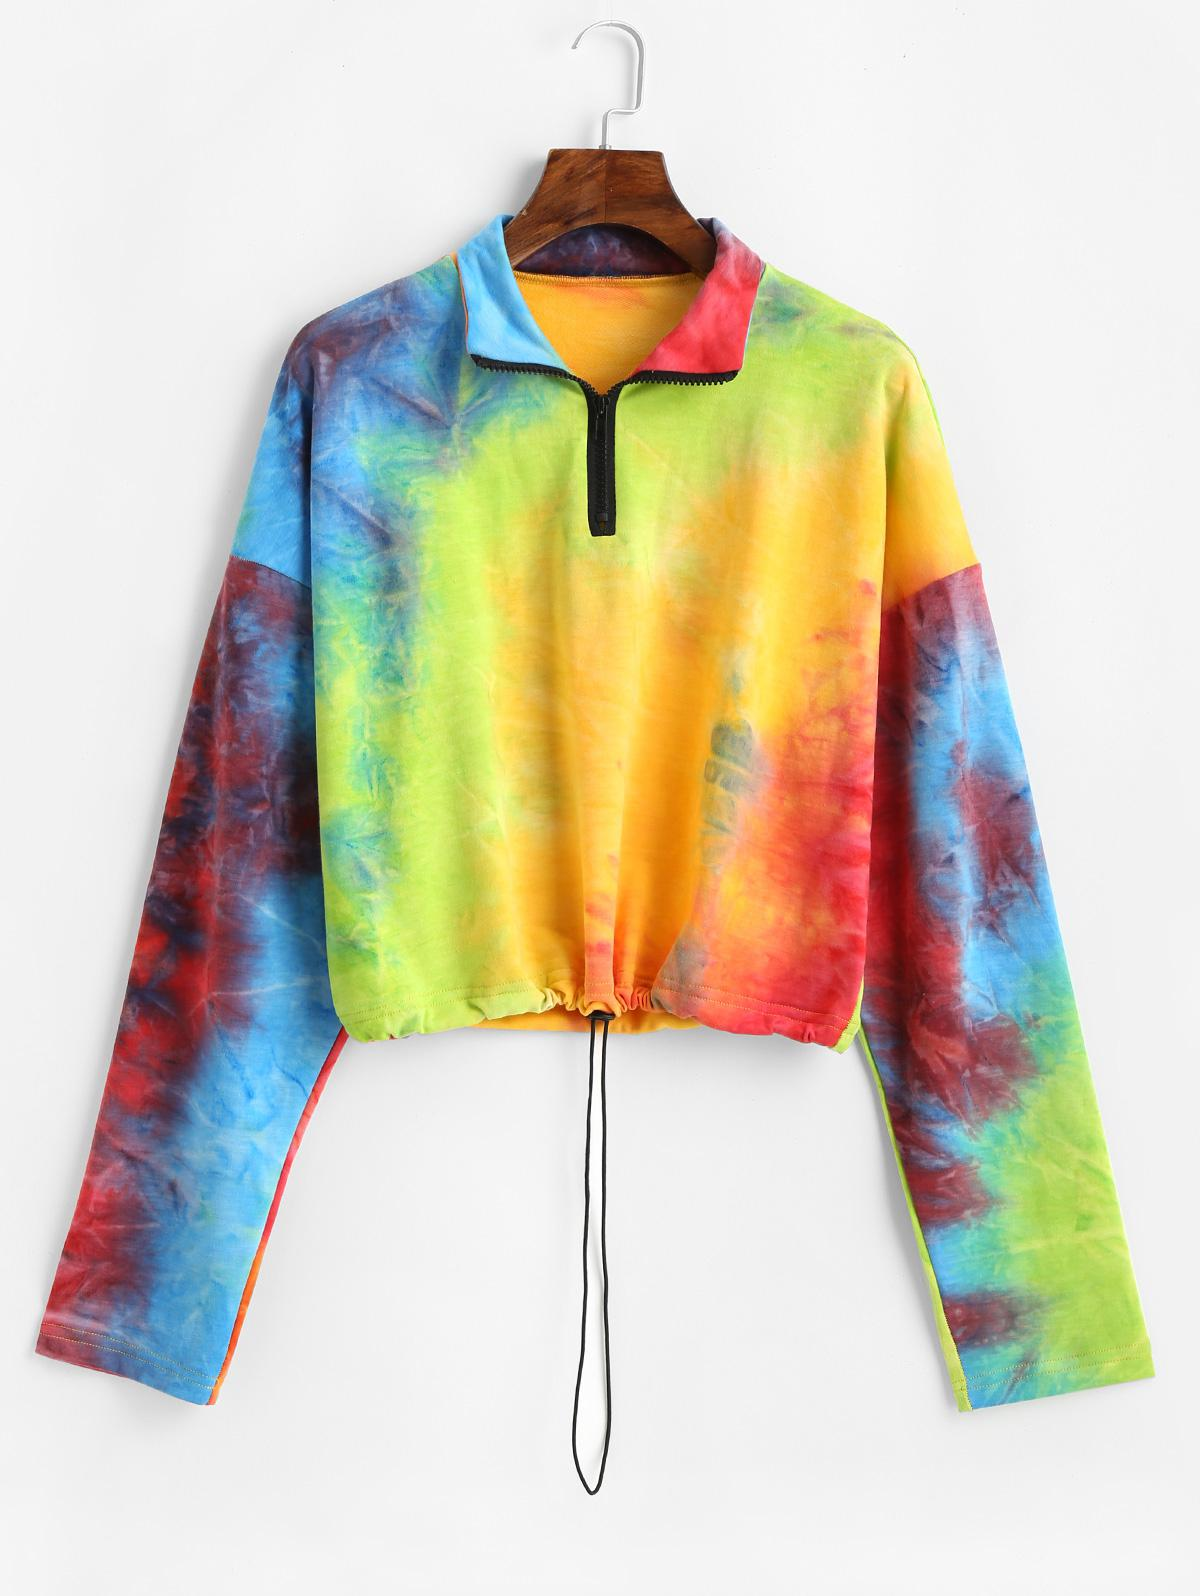 ZAFUL Drawstring Rainbow Tie Dye Half Zip Sweatshirt, Multi